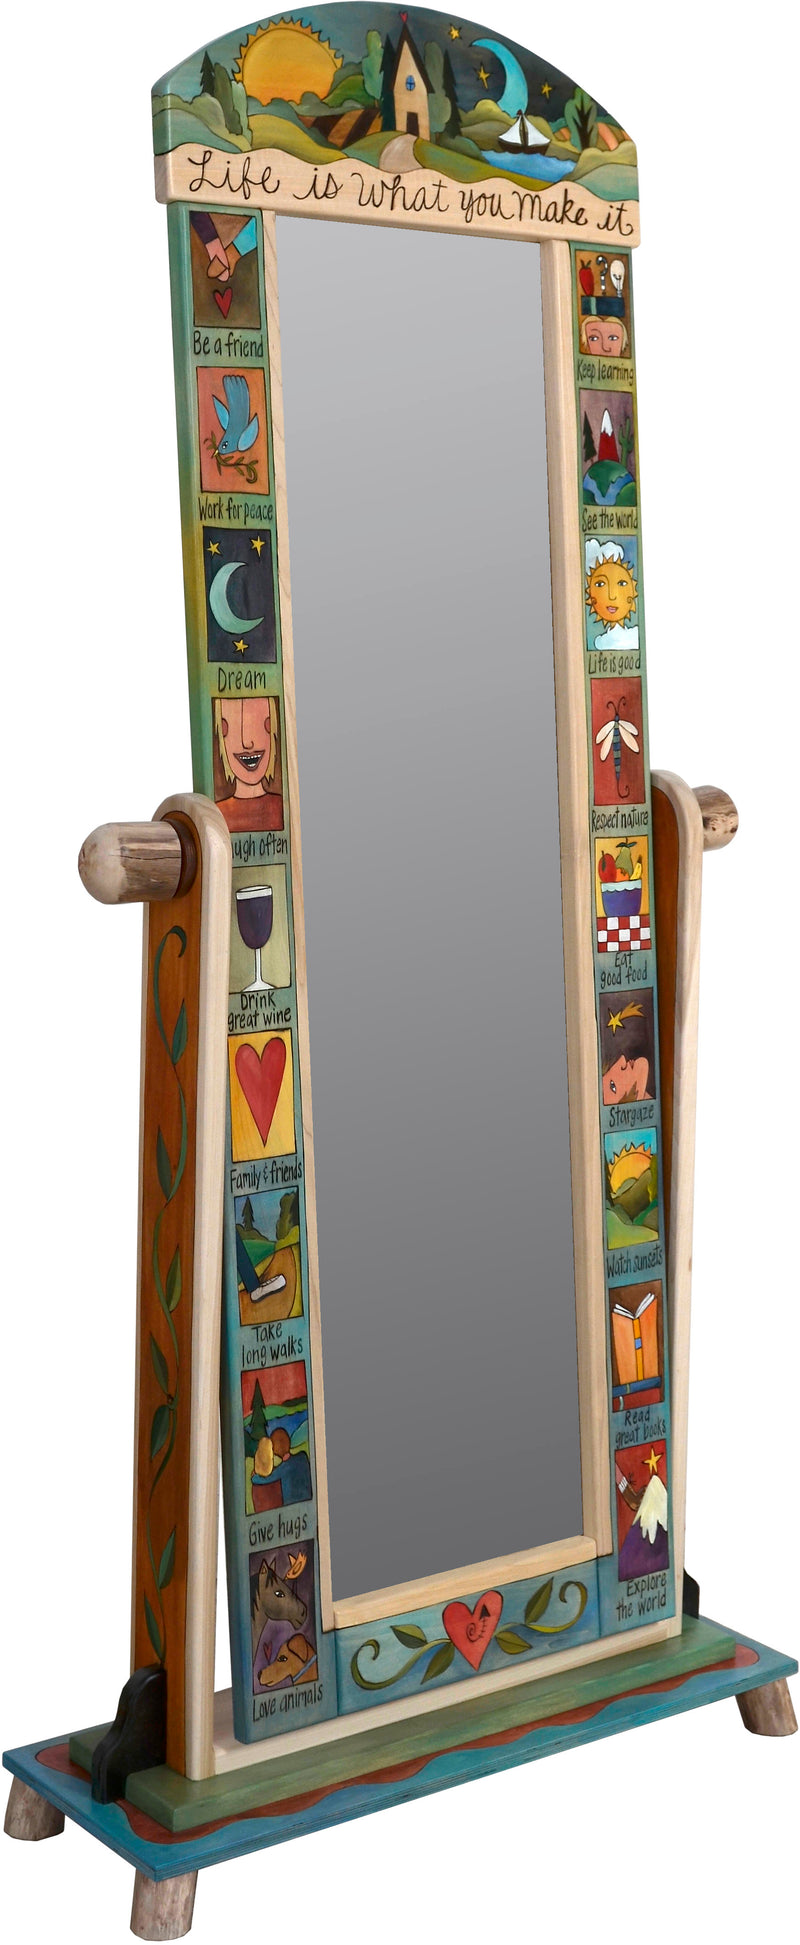 "Wardrobe Mirror on Stand –  ""Life is what you Make it"" mirror on stand with sun and moon over cozy cottage in the rolling hills motif"